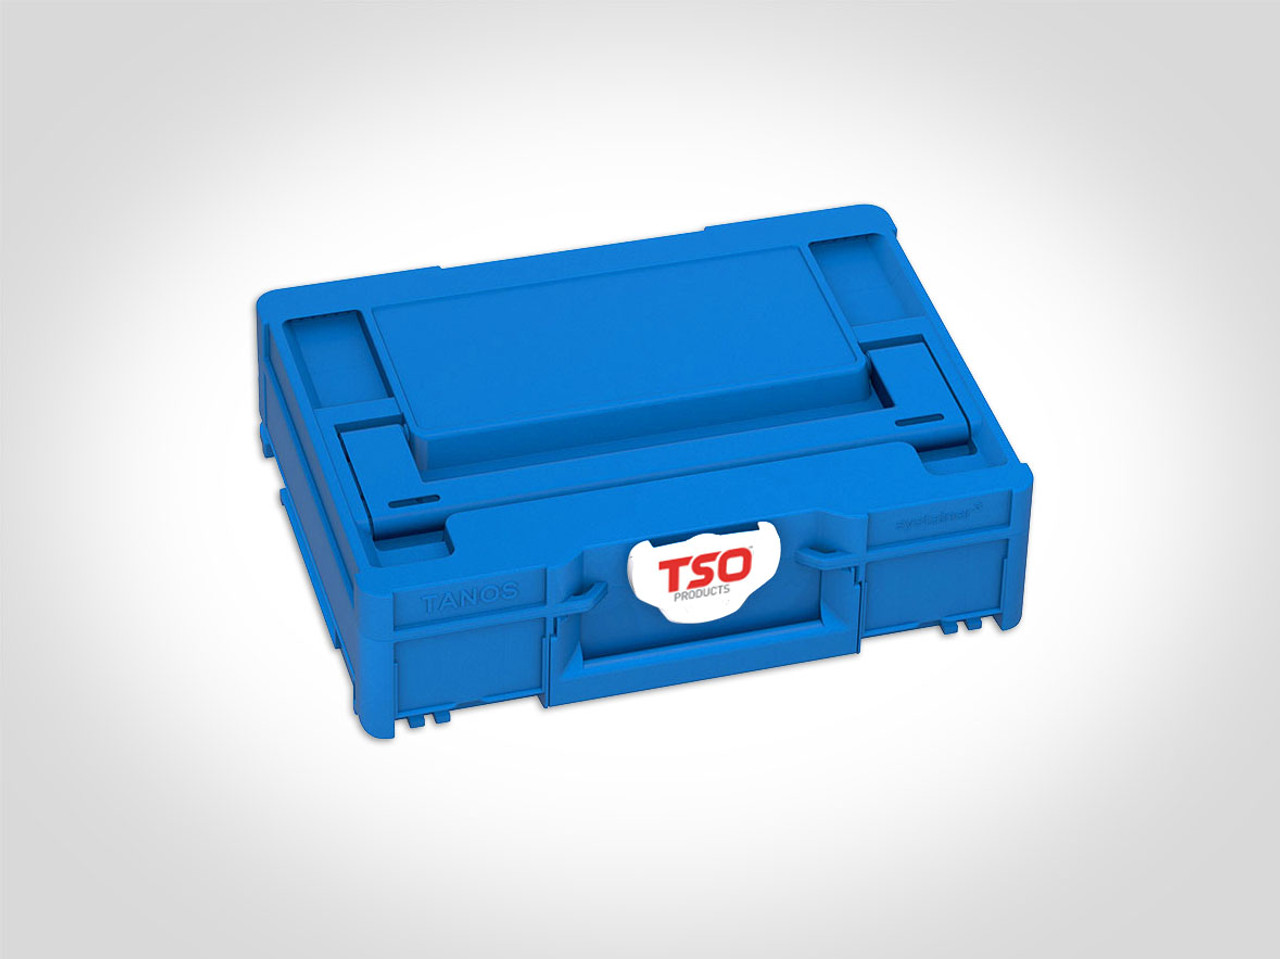 TSO's limited edition Systainer³ M 112 in stunning blue with TSO-branded latch. It will stand out in your shop!